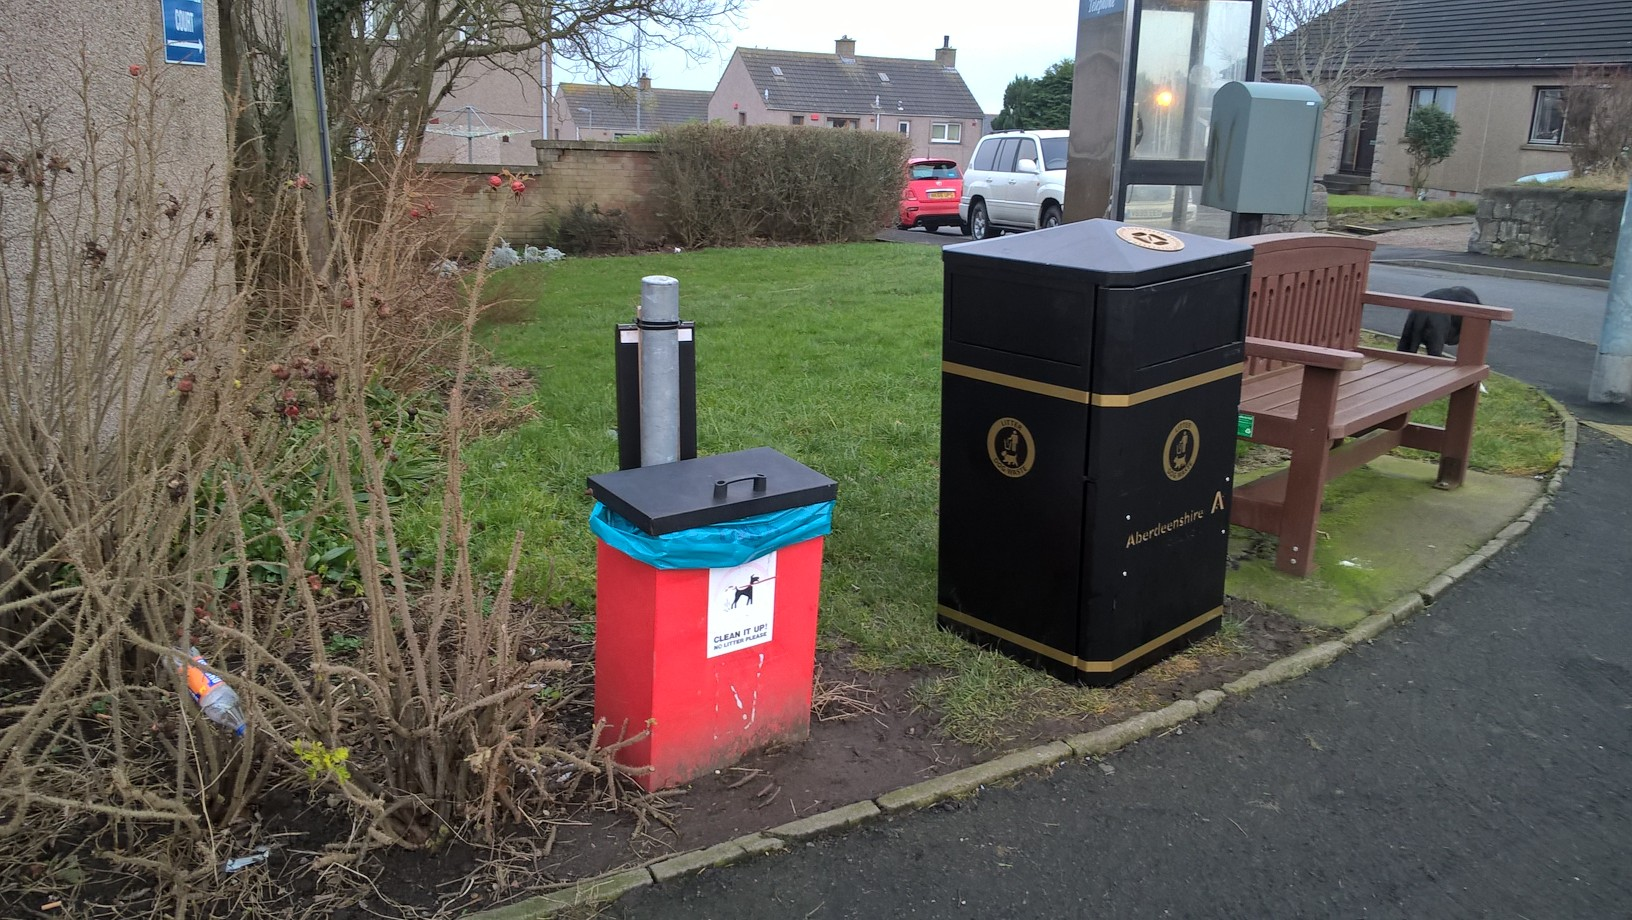 Ian mollison liberal democrat councillor for north kincardine - Rd rubbish bin ...